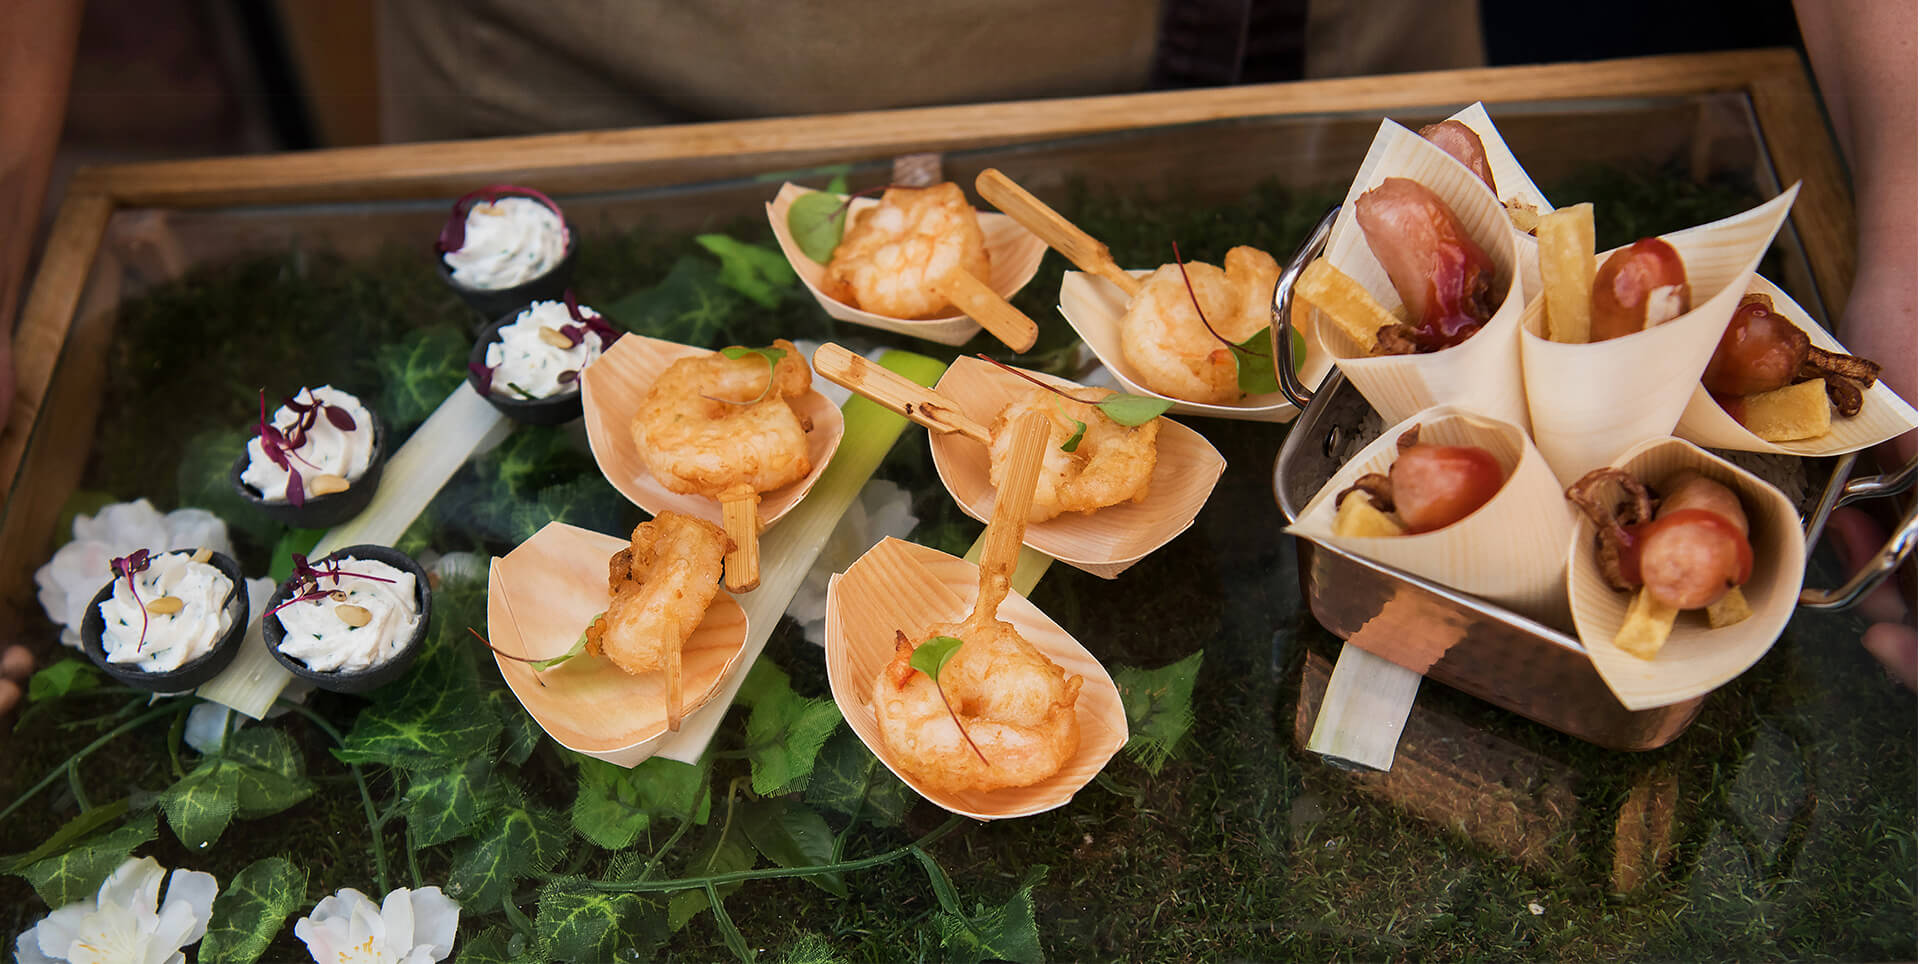 A range of delicious wedding menu items ready for guests to enjoy at Curradine Barns